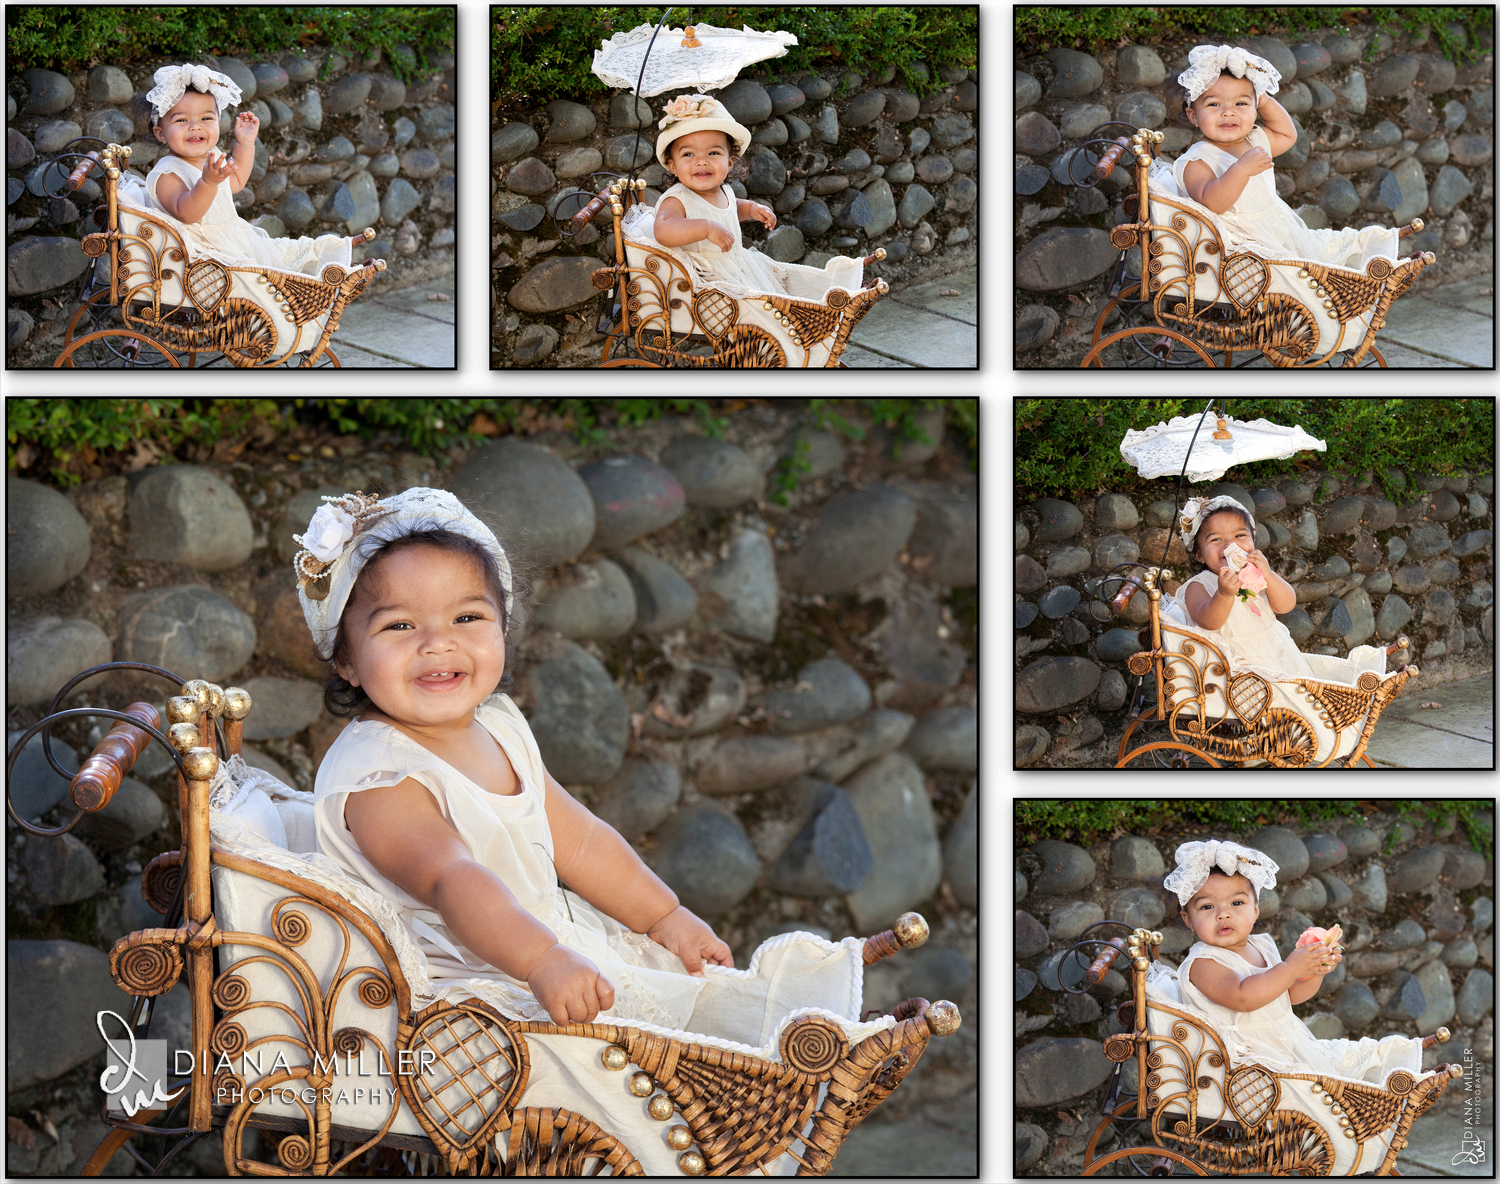 Baby in a vintage baby buggy